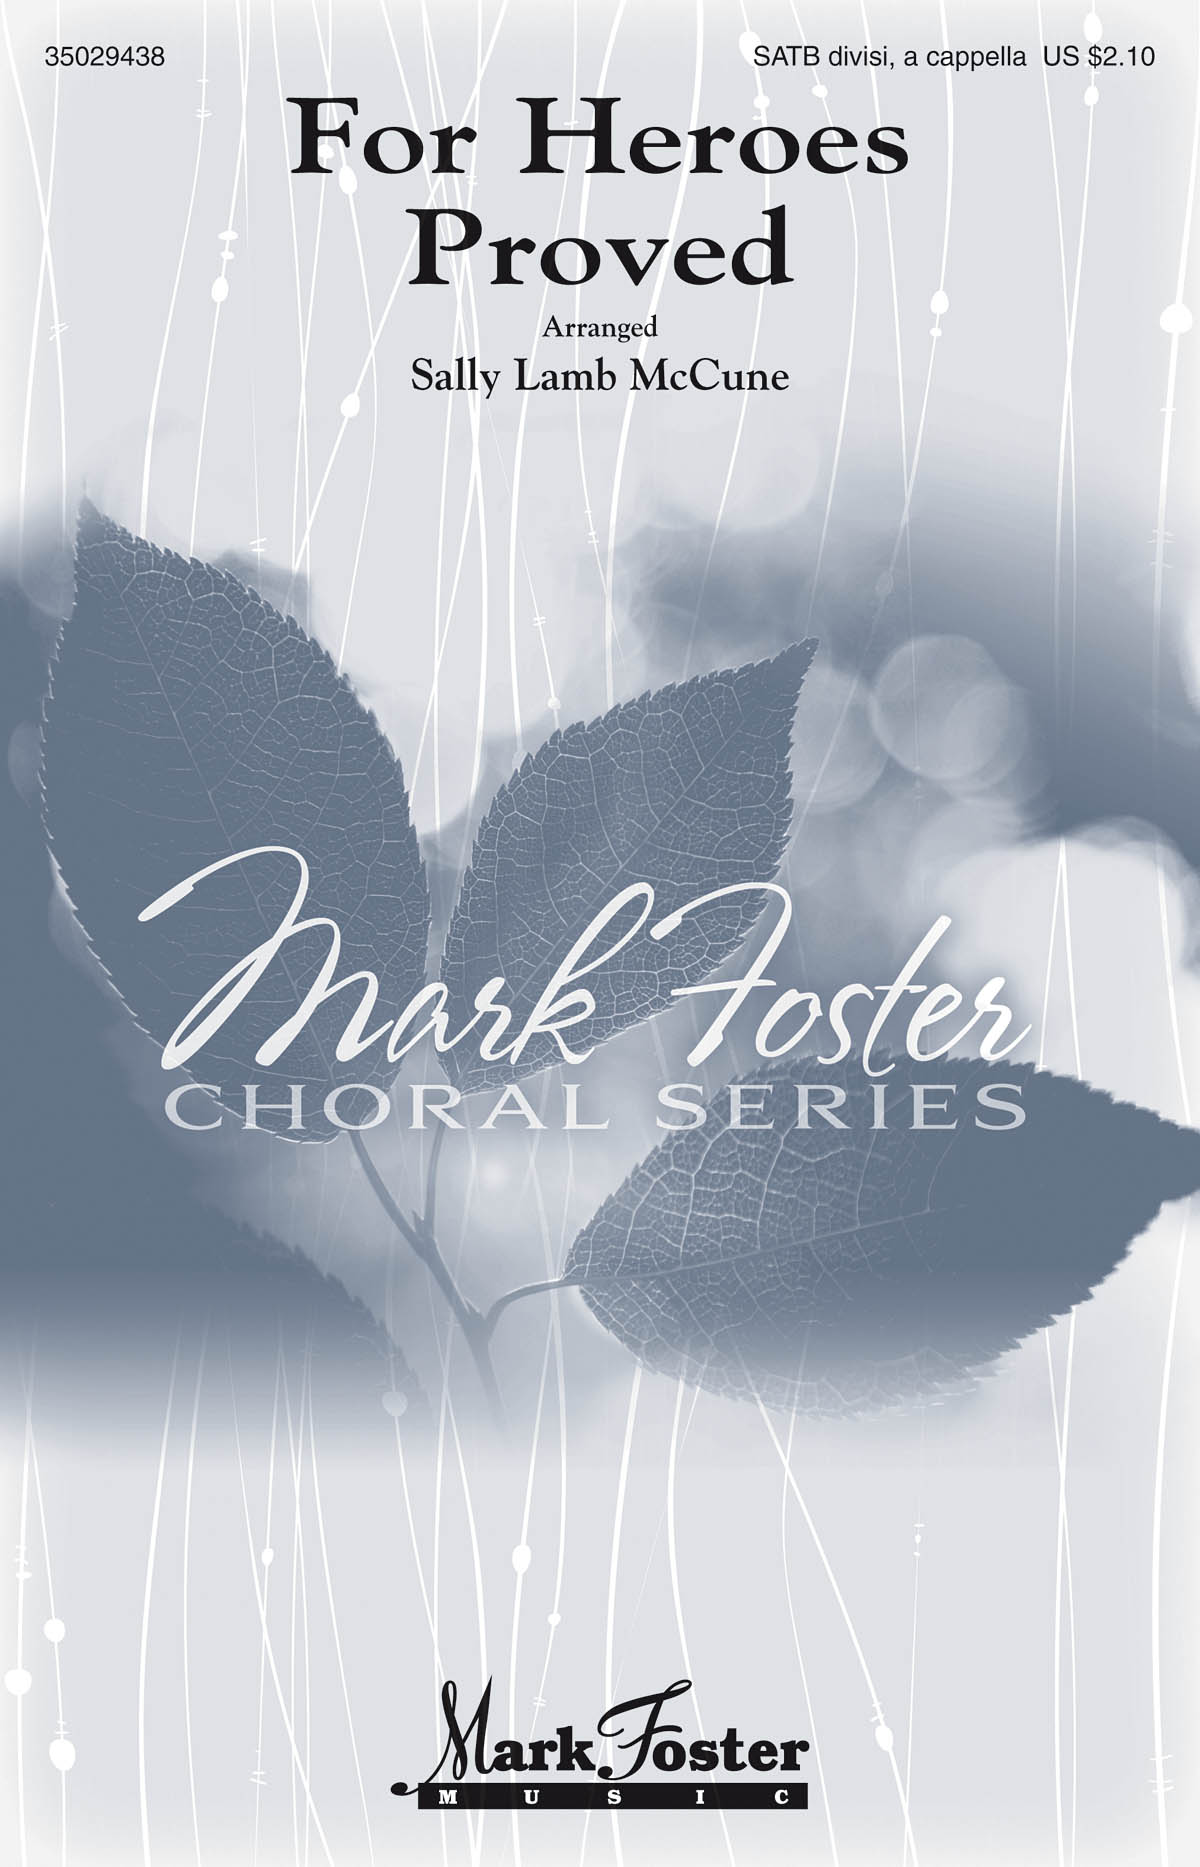 For Heroes Proved: SATB: Vocal Score